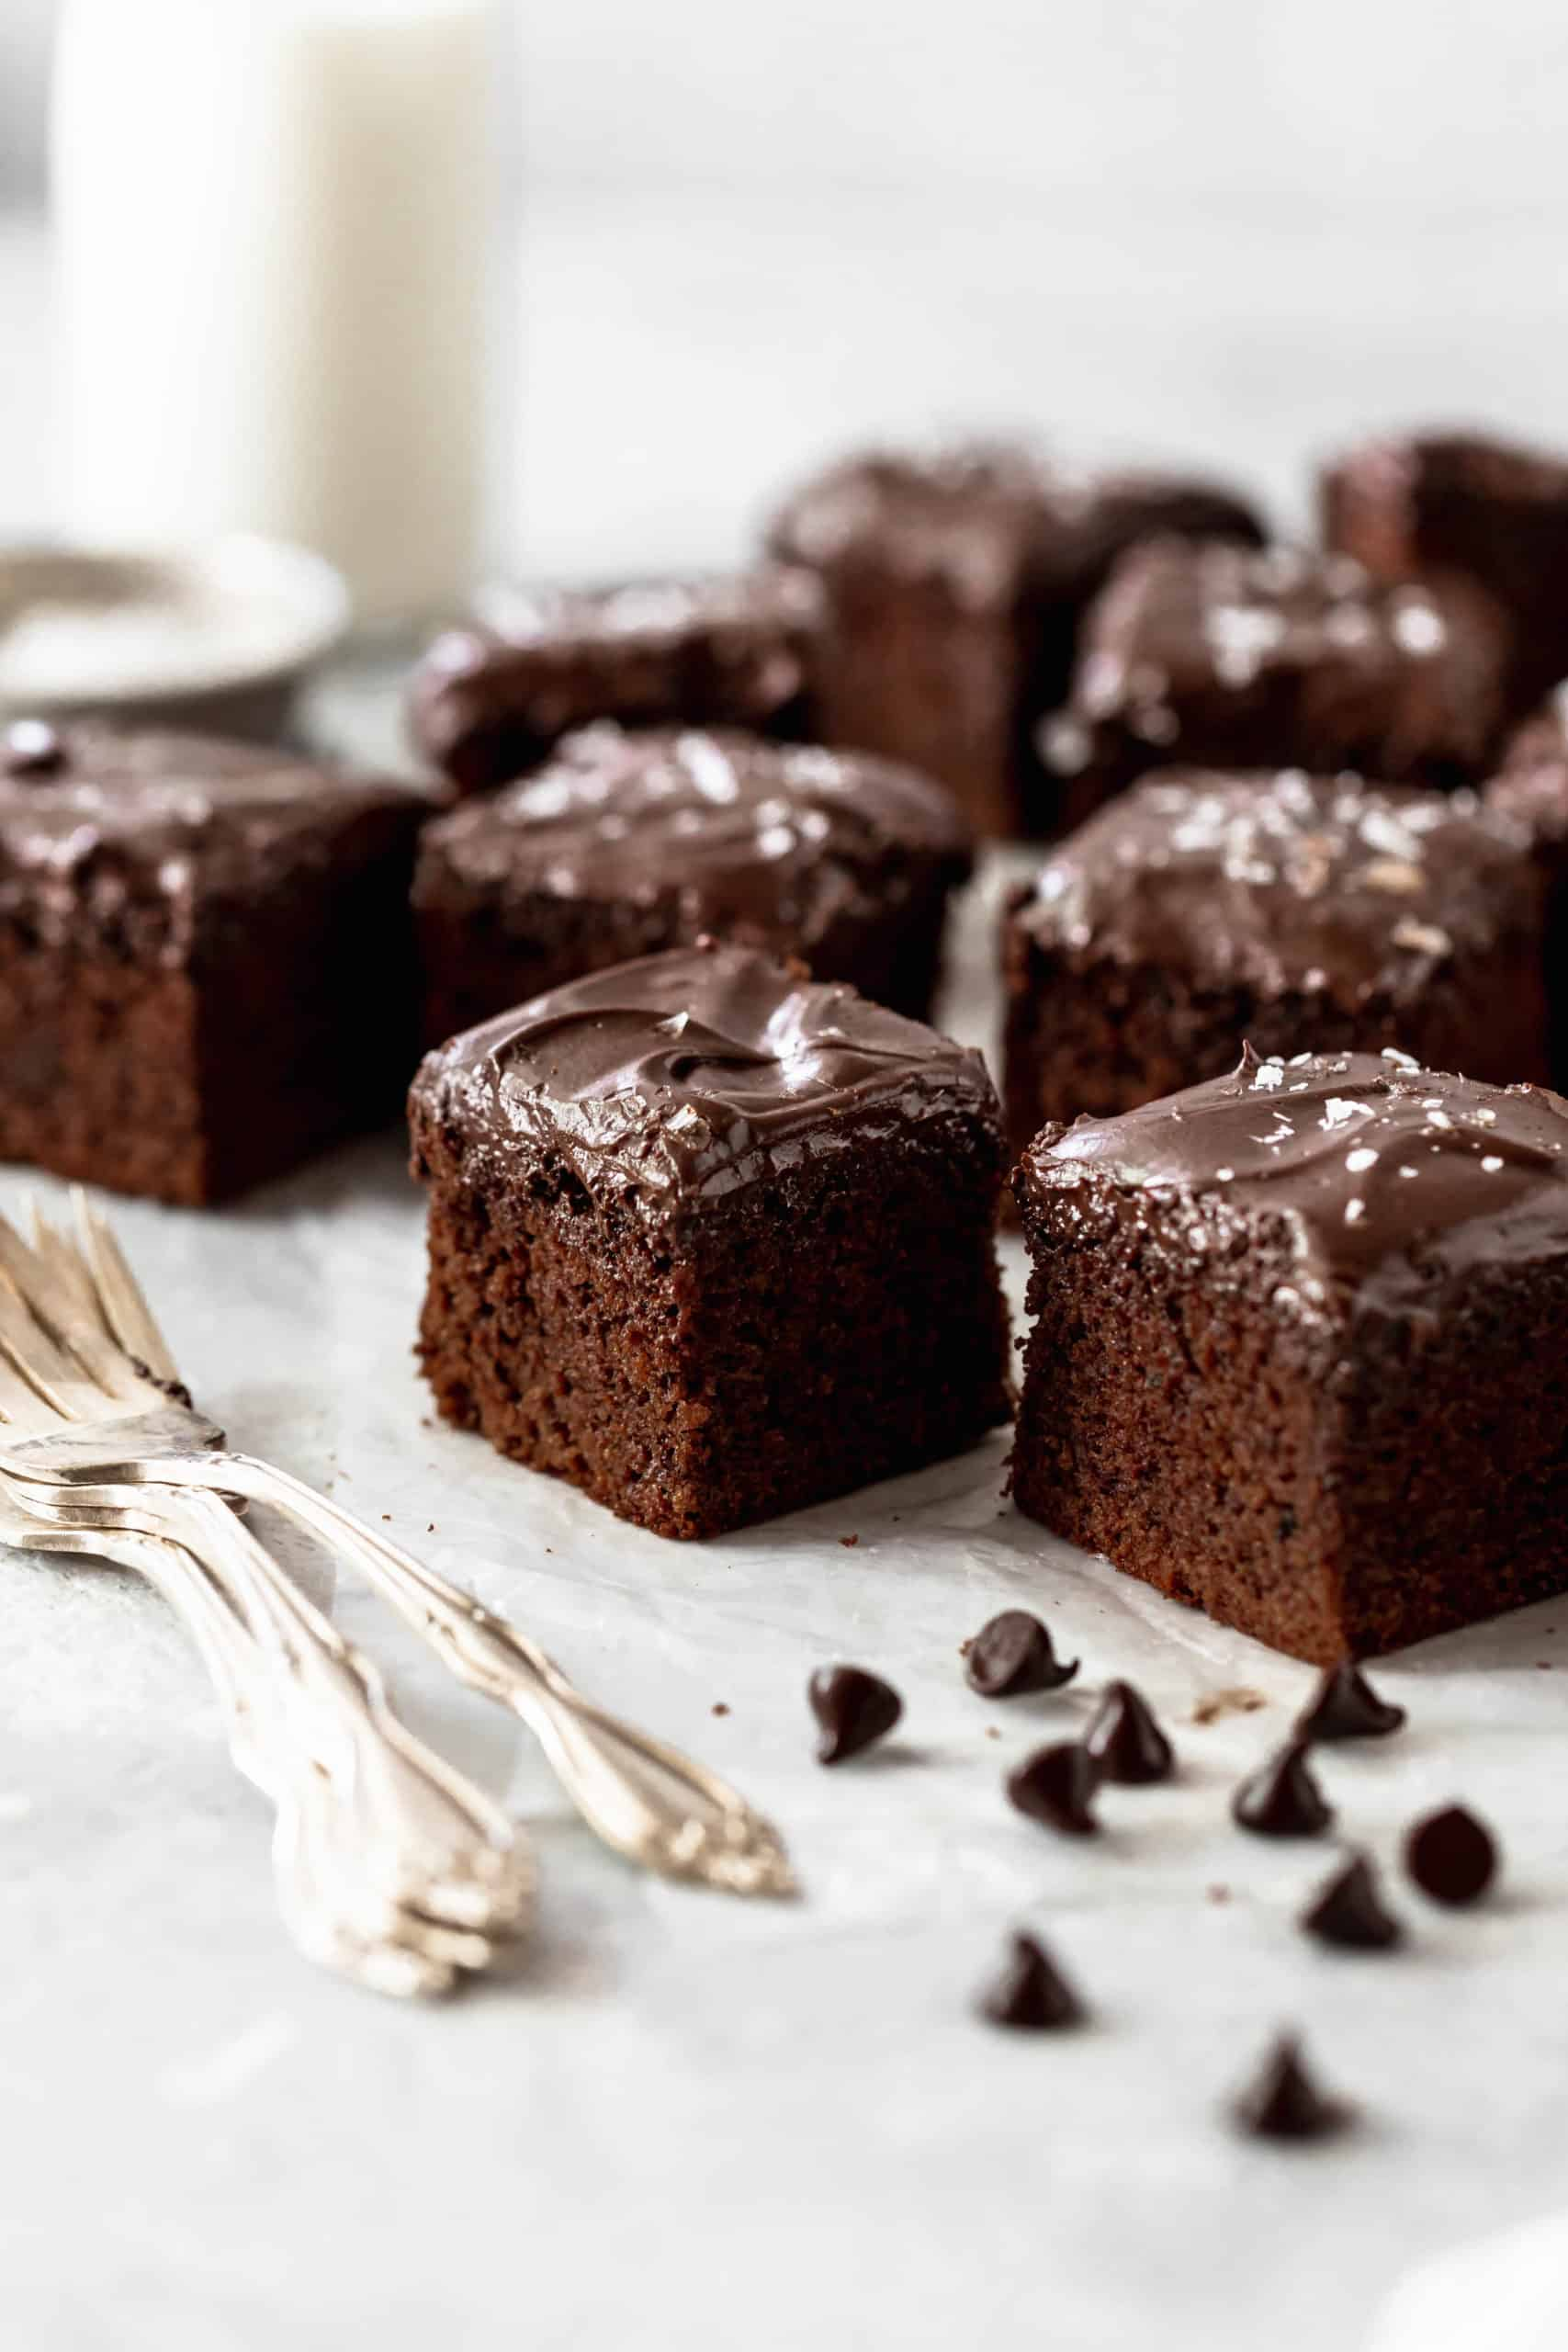 chocolate cake pieces with chocolate frosting on parchment paper